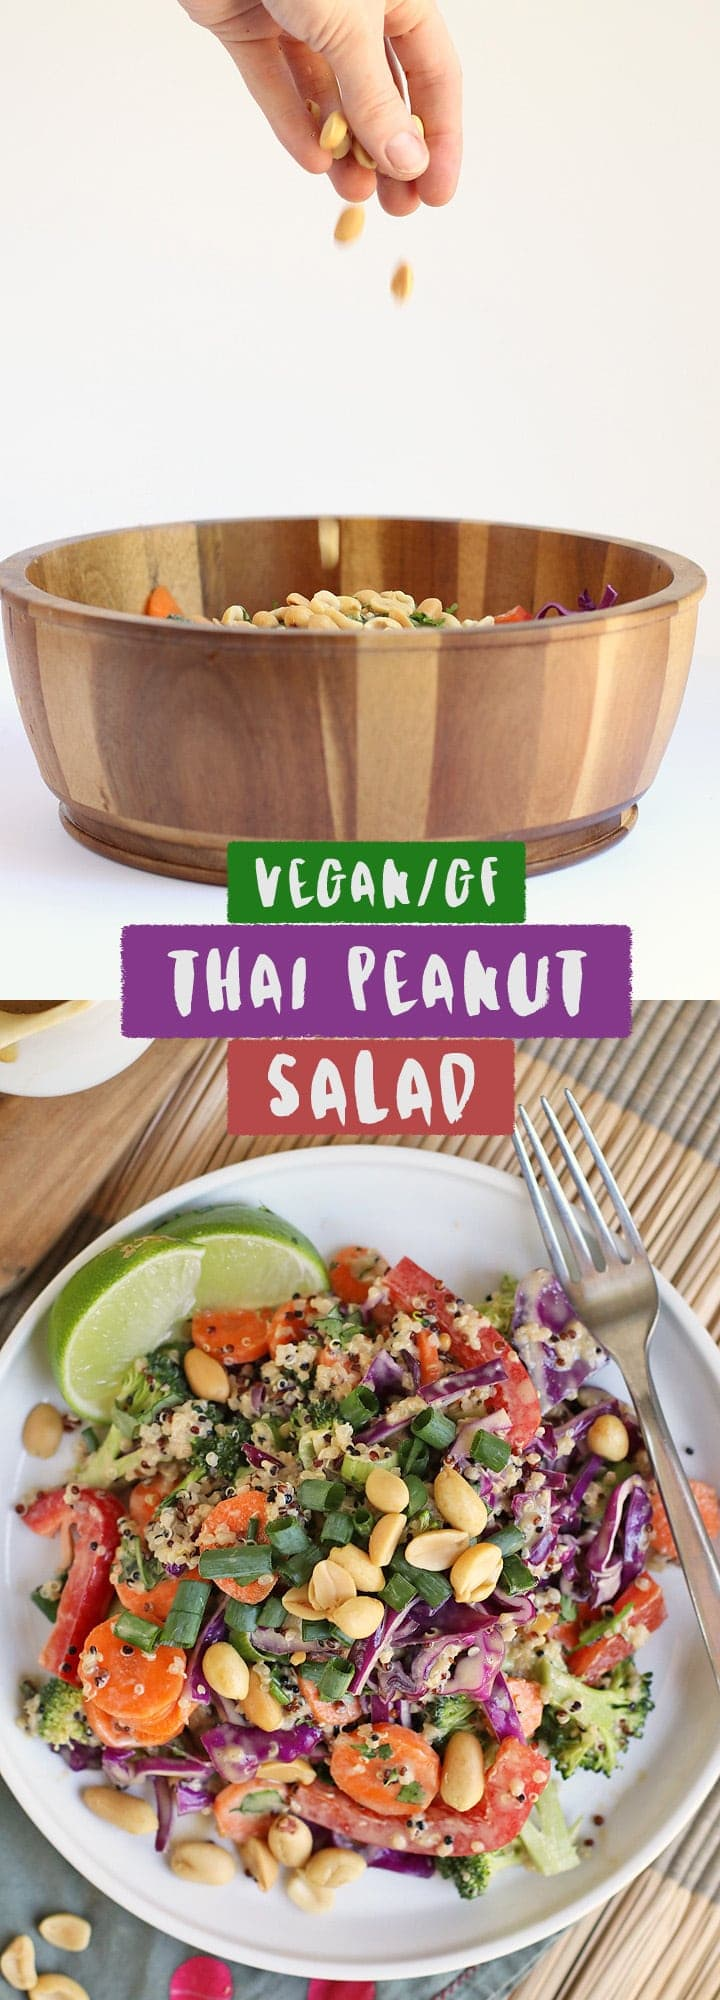 This Thai Peanut Salad with Sesame Peanut Sauce is a hearty vegan and gluten-free meal that is filled with healthy vegetables and delicious flavor.